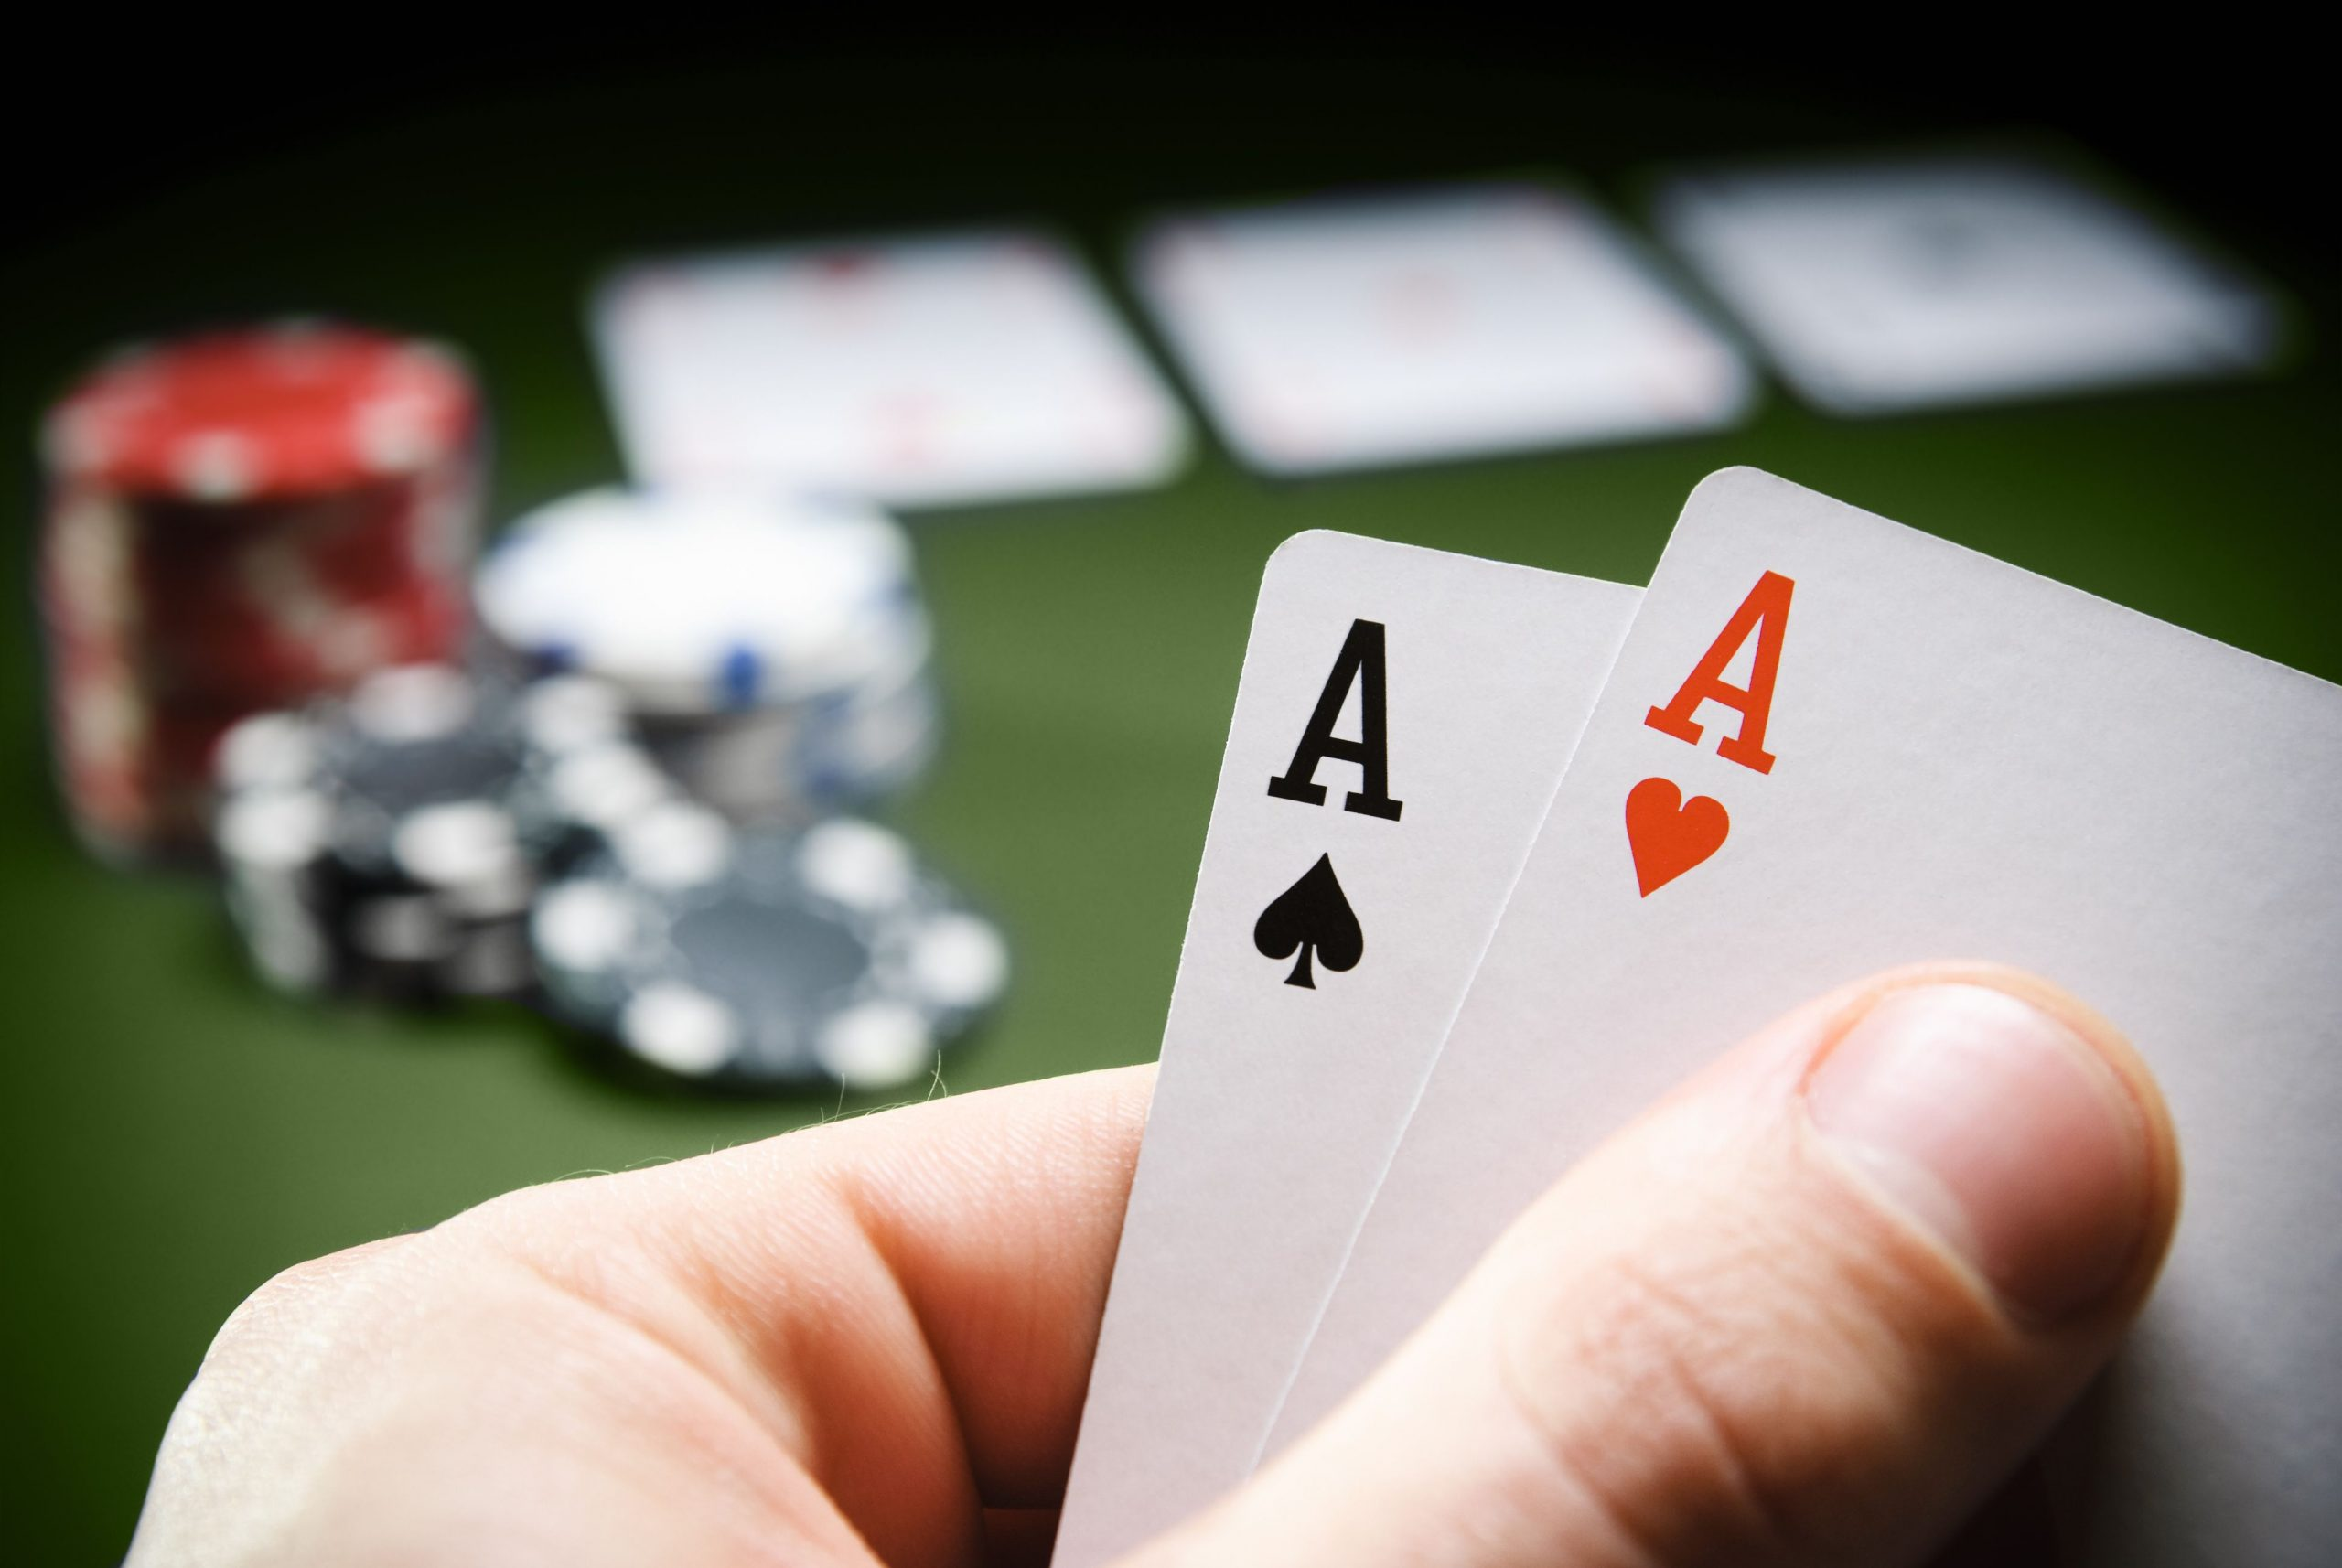 How to make the online poker game earnestly all the time?